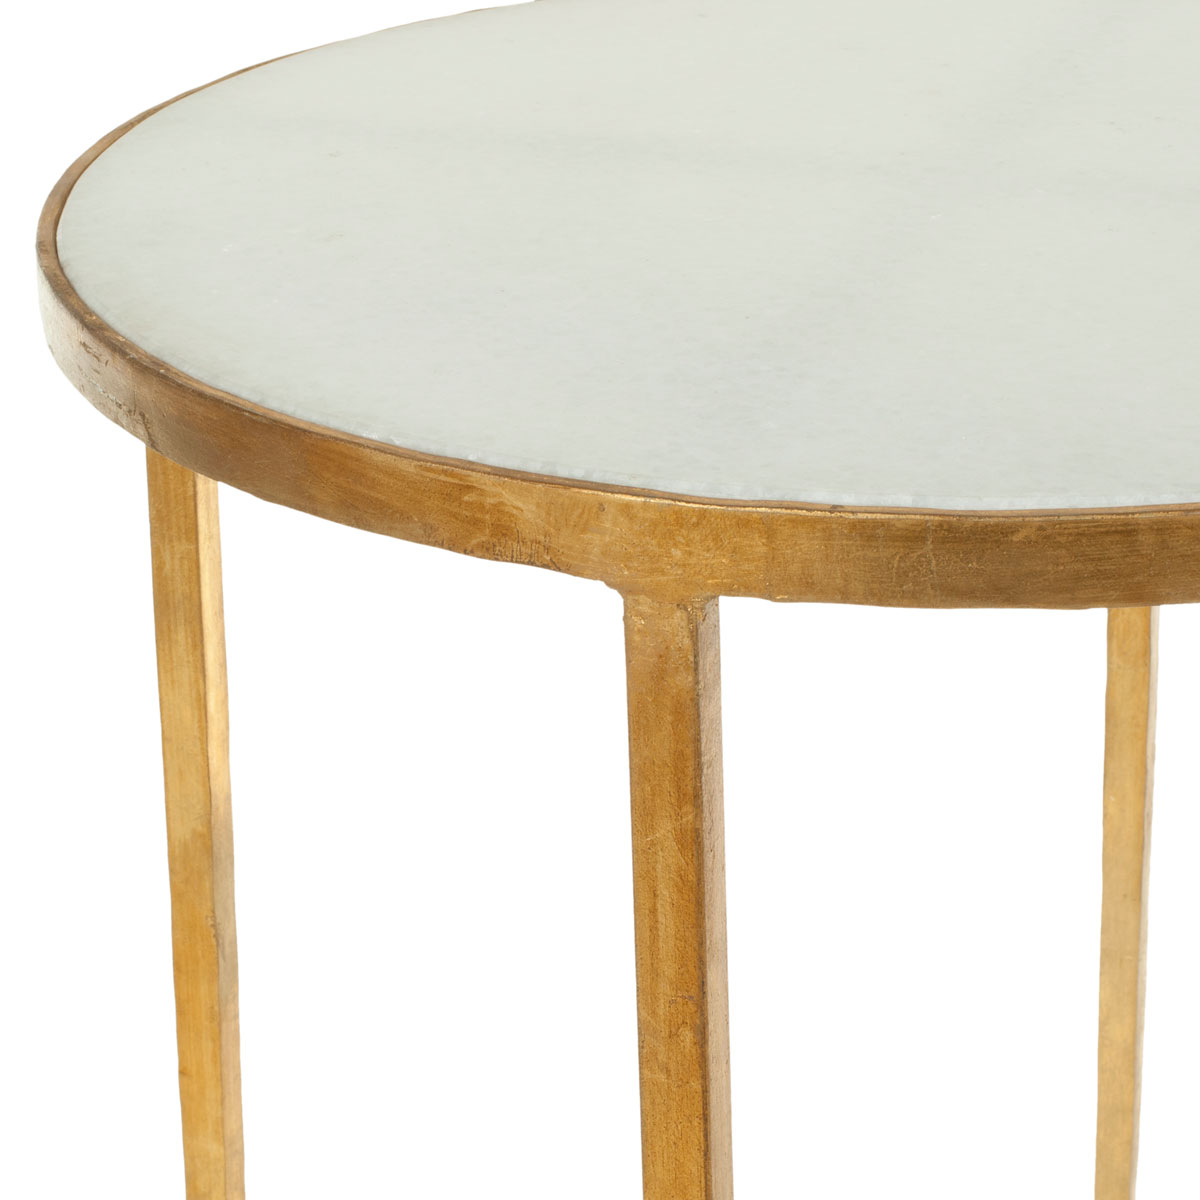 accent tables furniture safavieh detail round gold table tracey foil top design outside and chair covers metal storage oval marble coffee deck end small entryway cabinet verizon